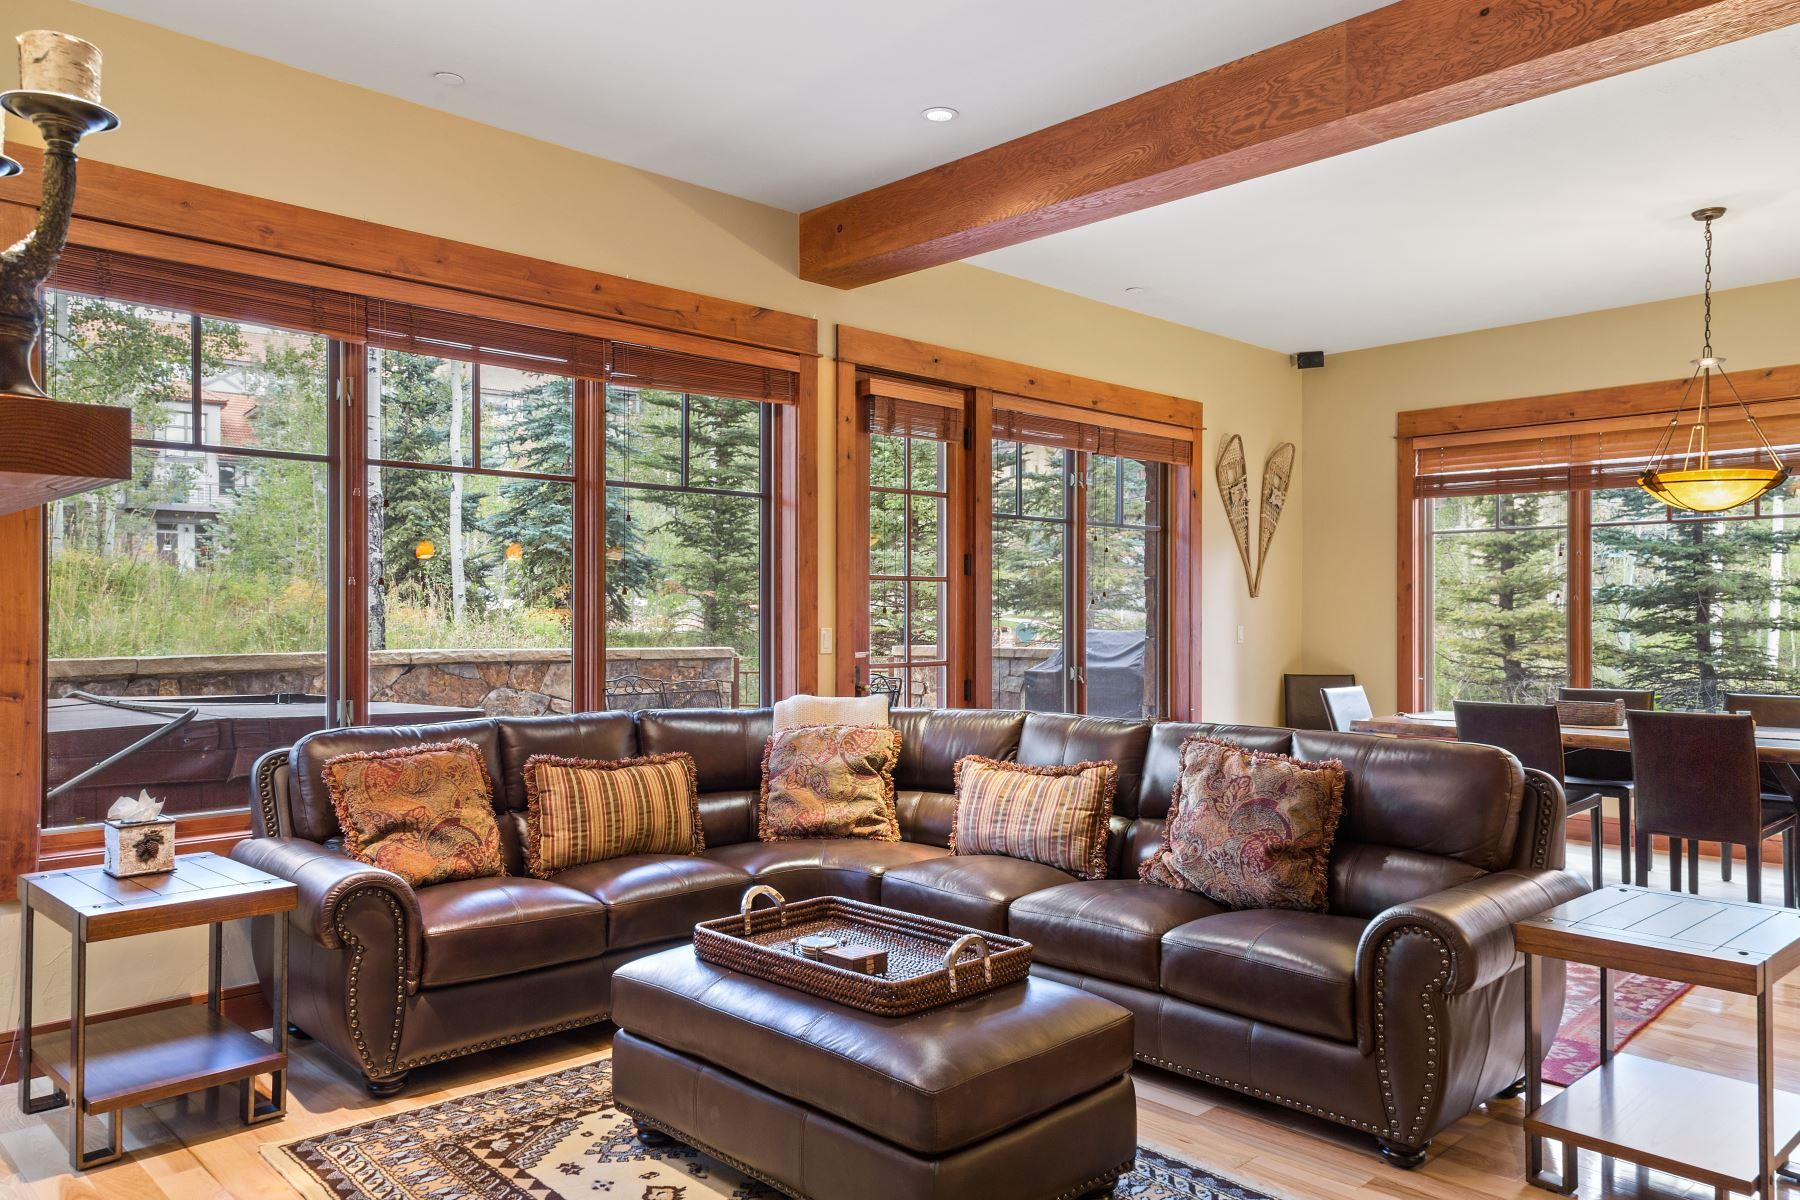 Property Image 1 - Luxurious Condo with Ski Access, Hot Tub, and Oxygen Bar